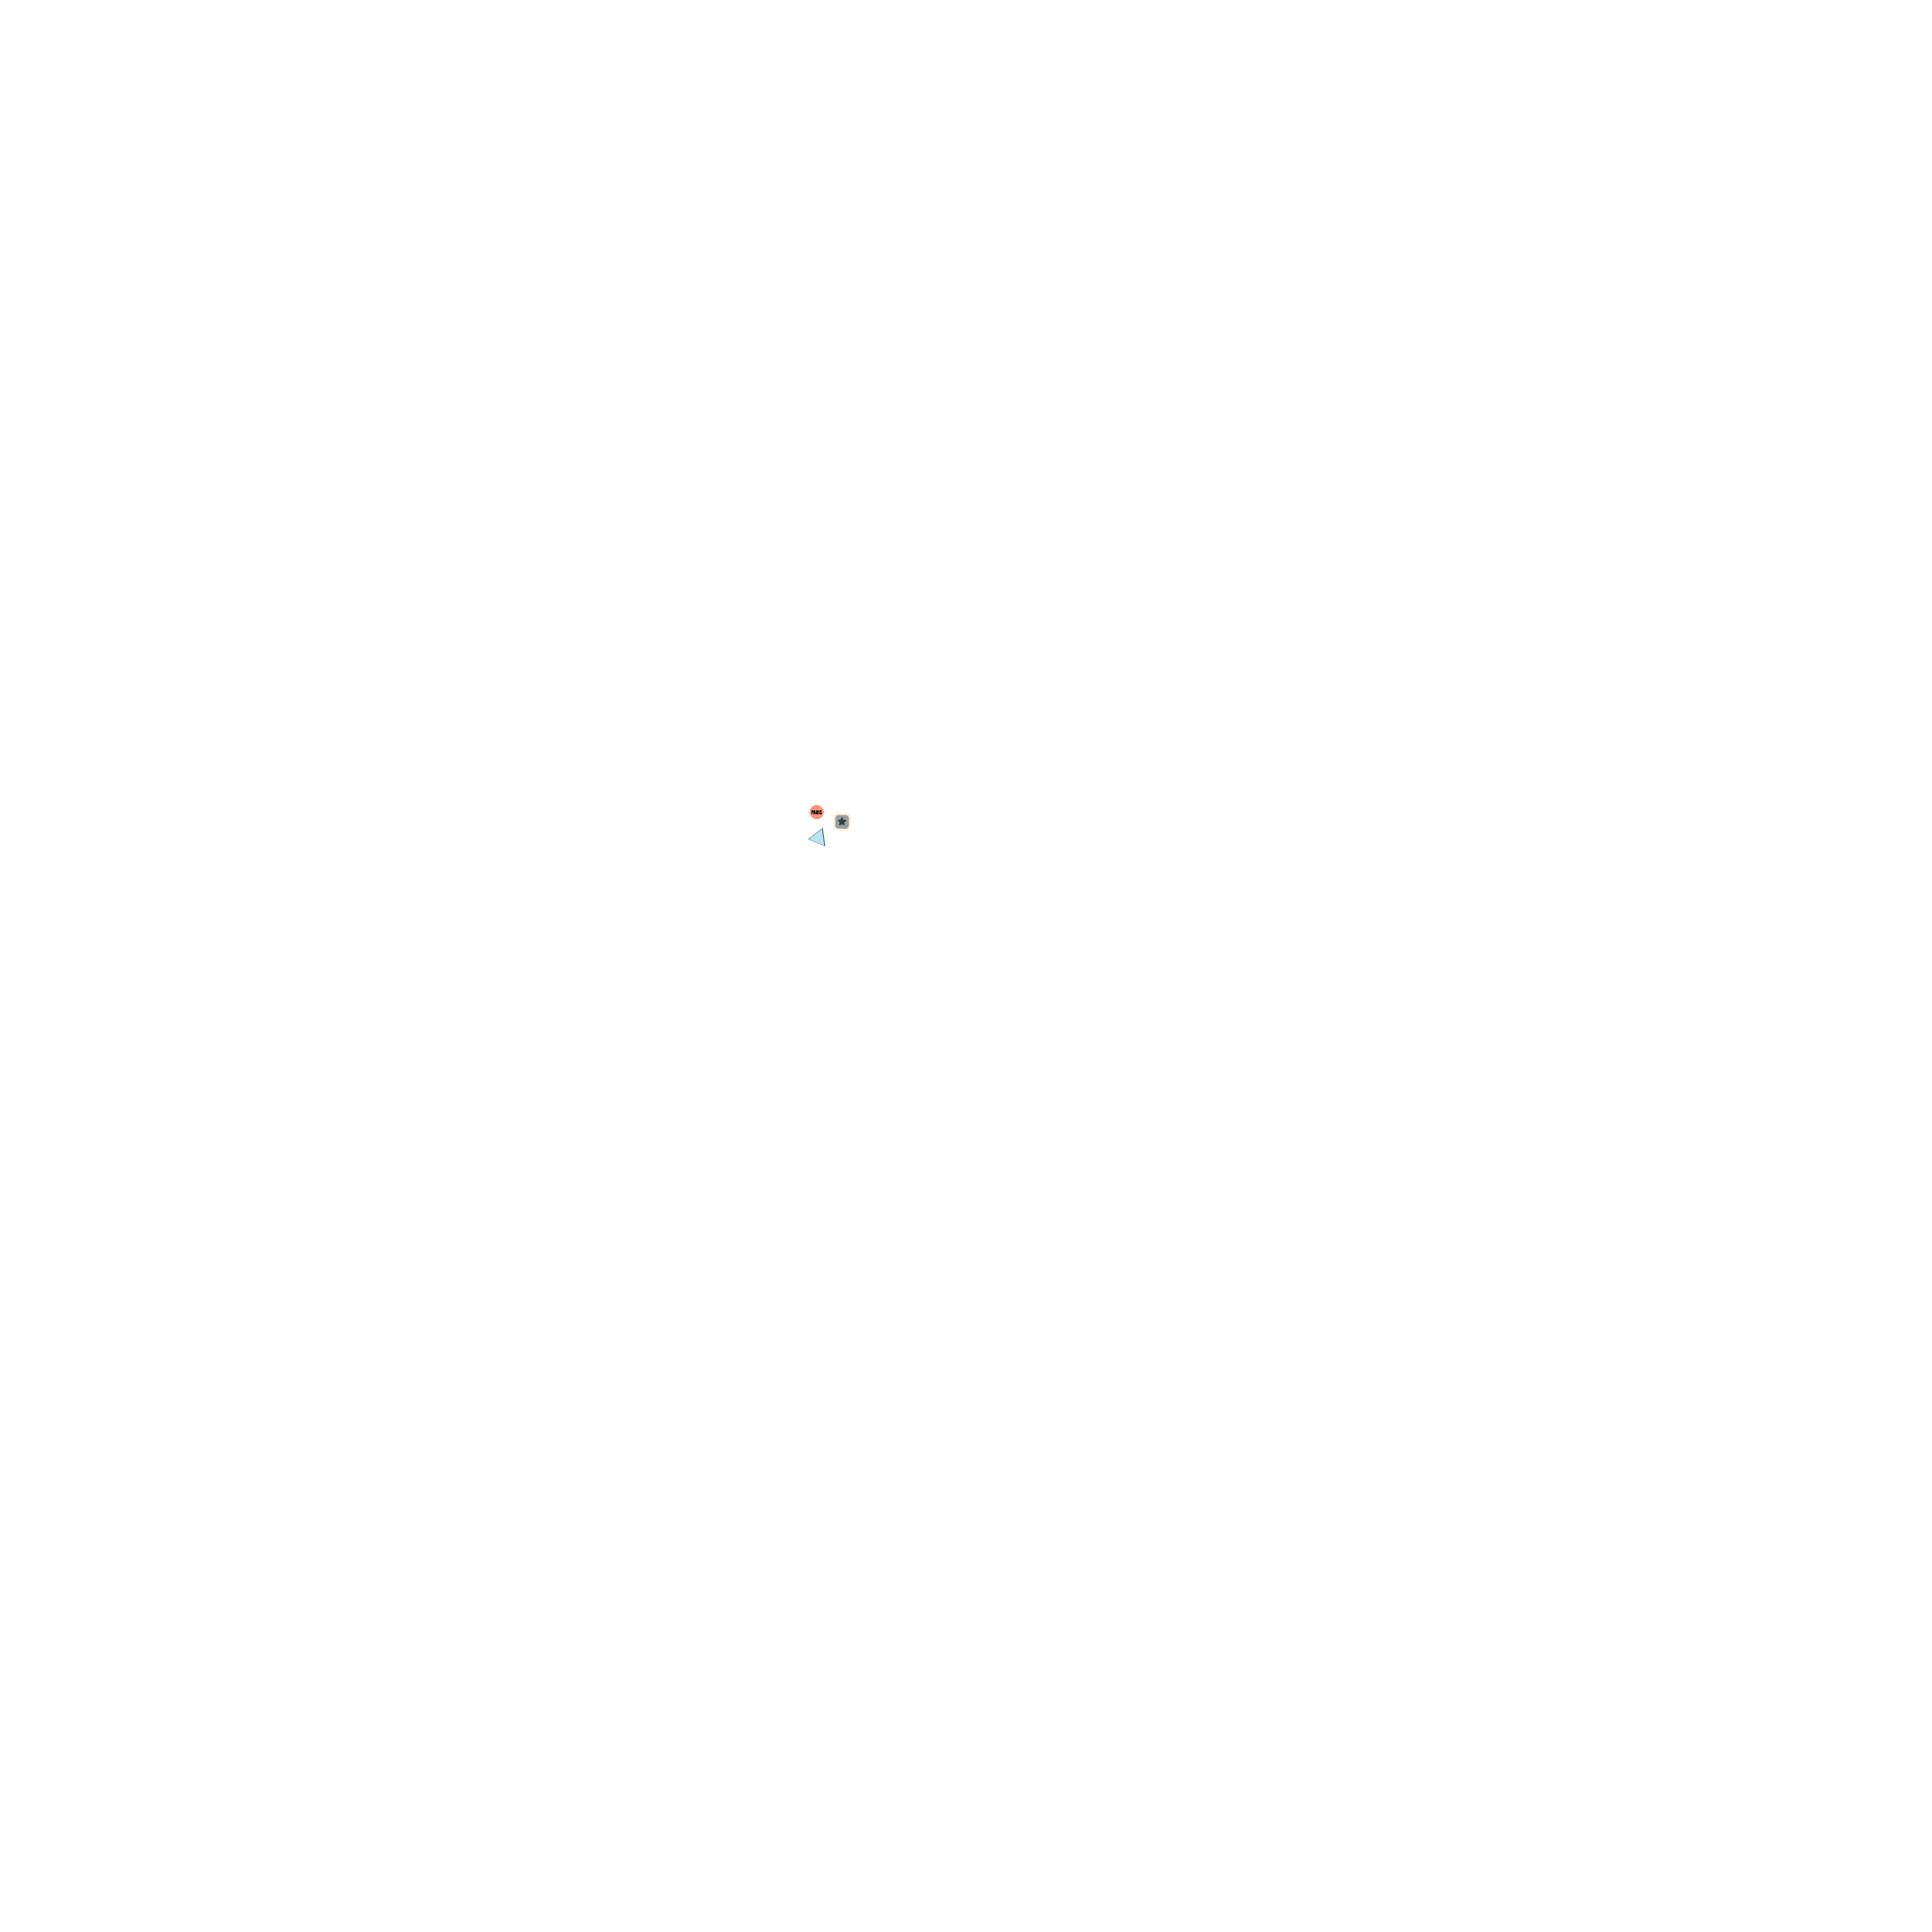 LaGallivanter